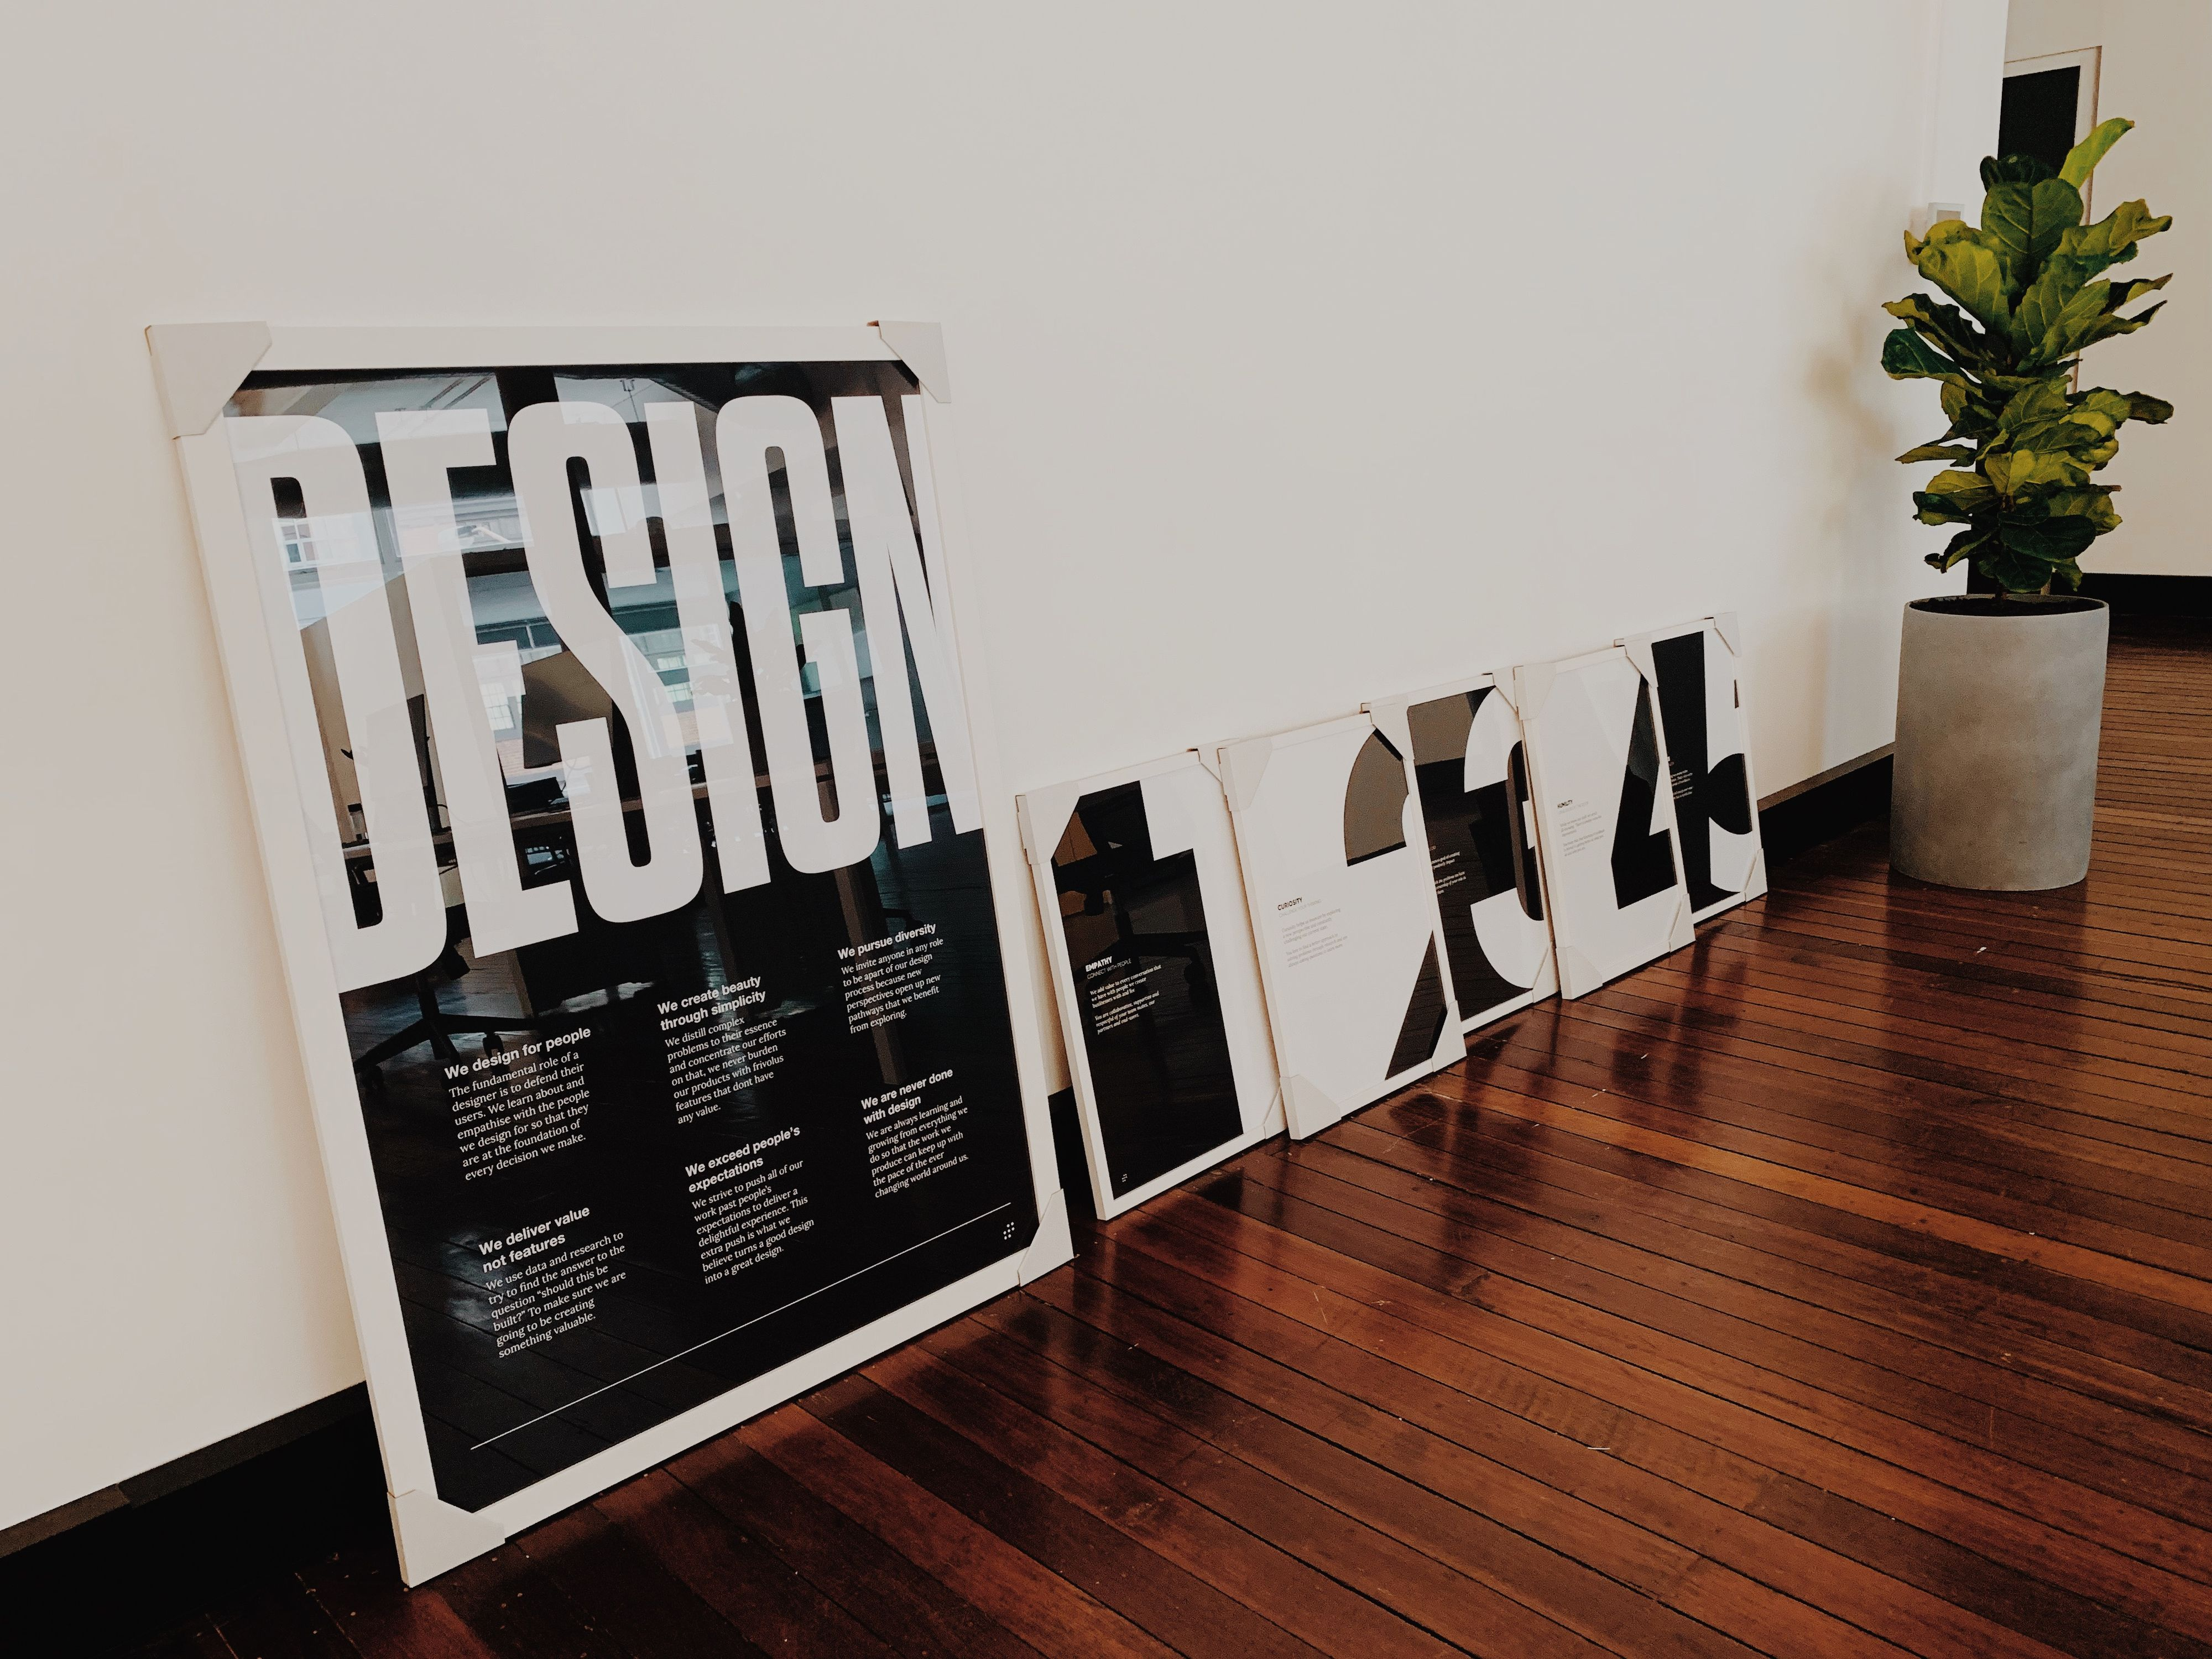 Our design team principles and values